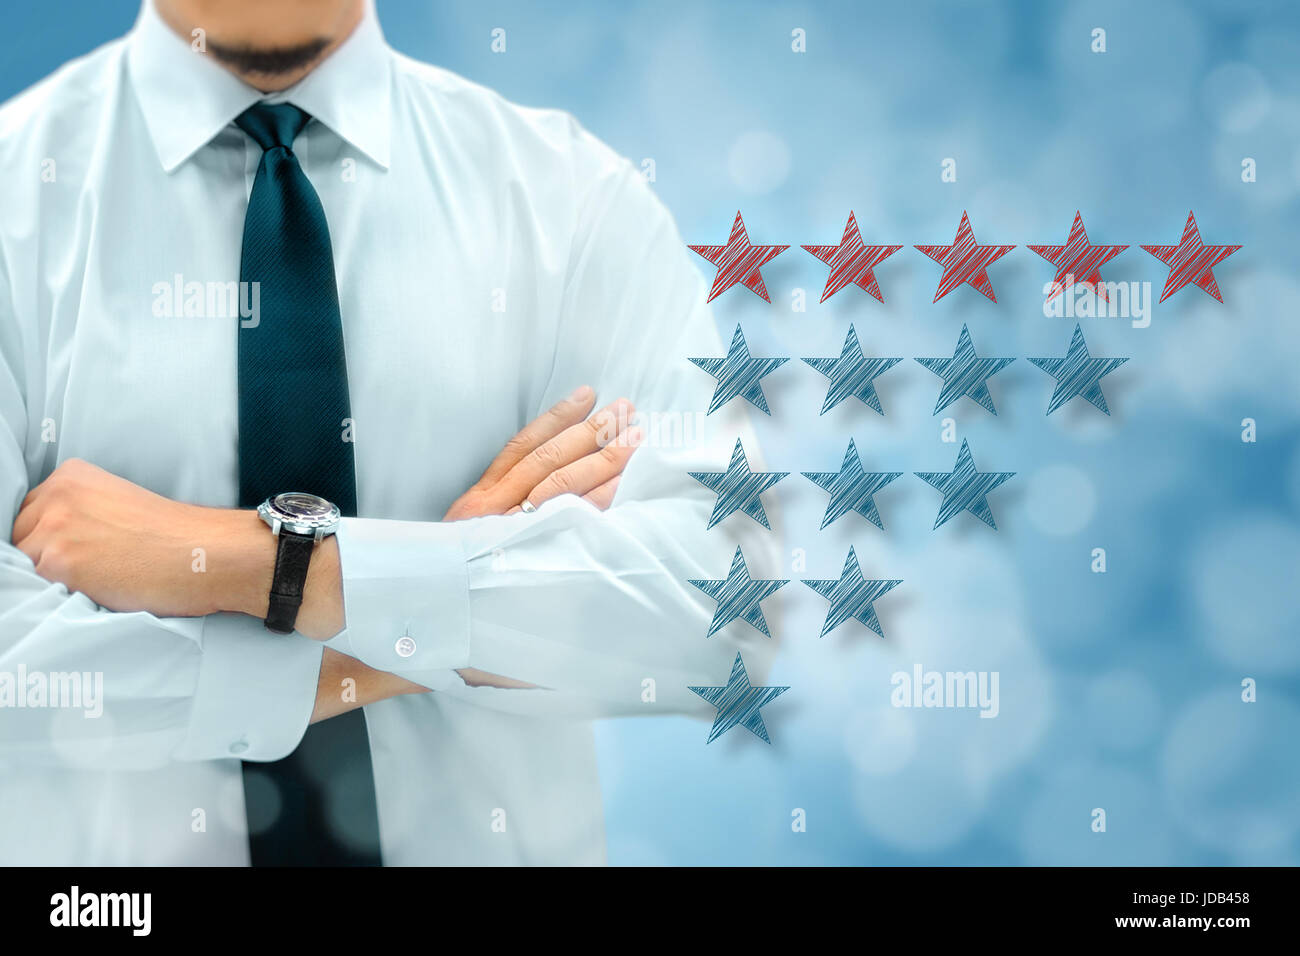 Quality, performance review, evaluation and classification ranking concept. Businessman silhouette in background. - Stock Image